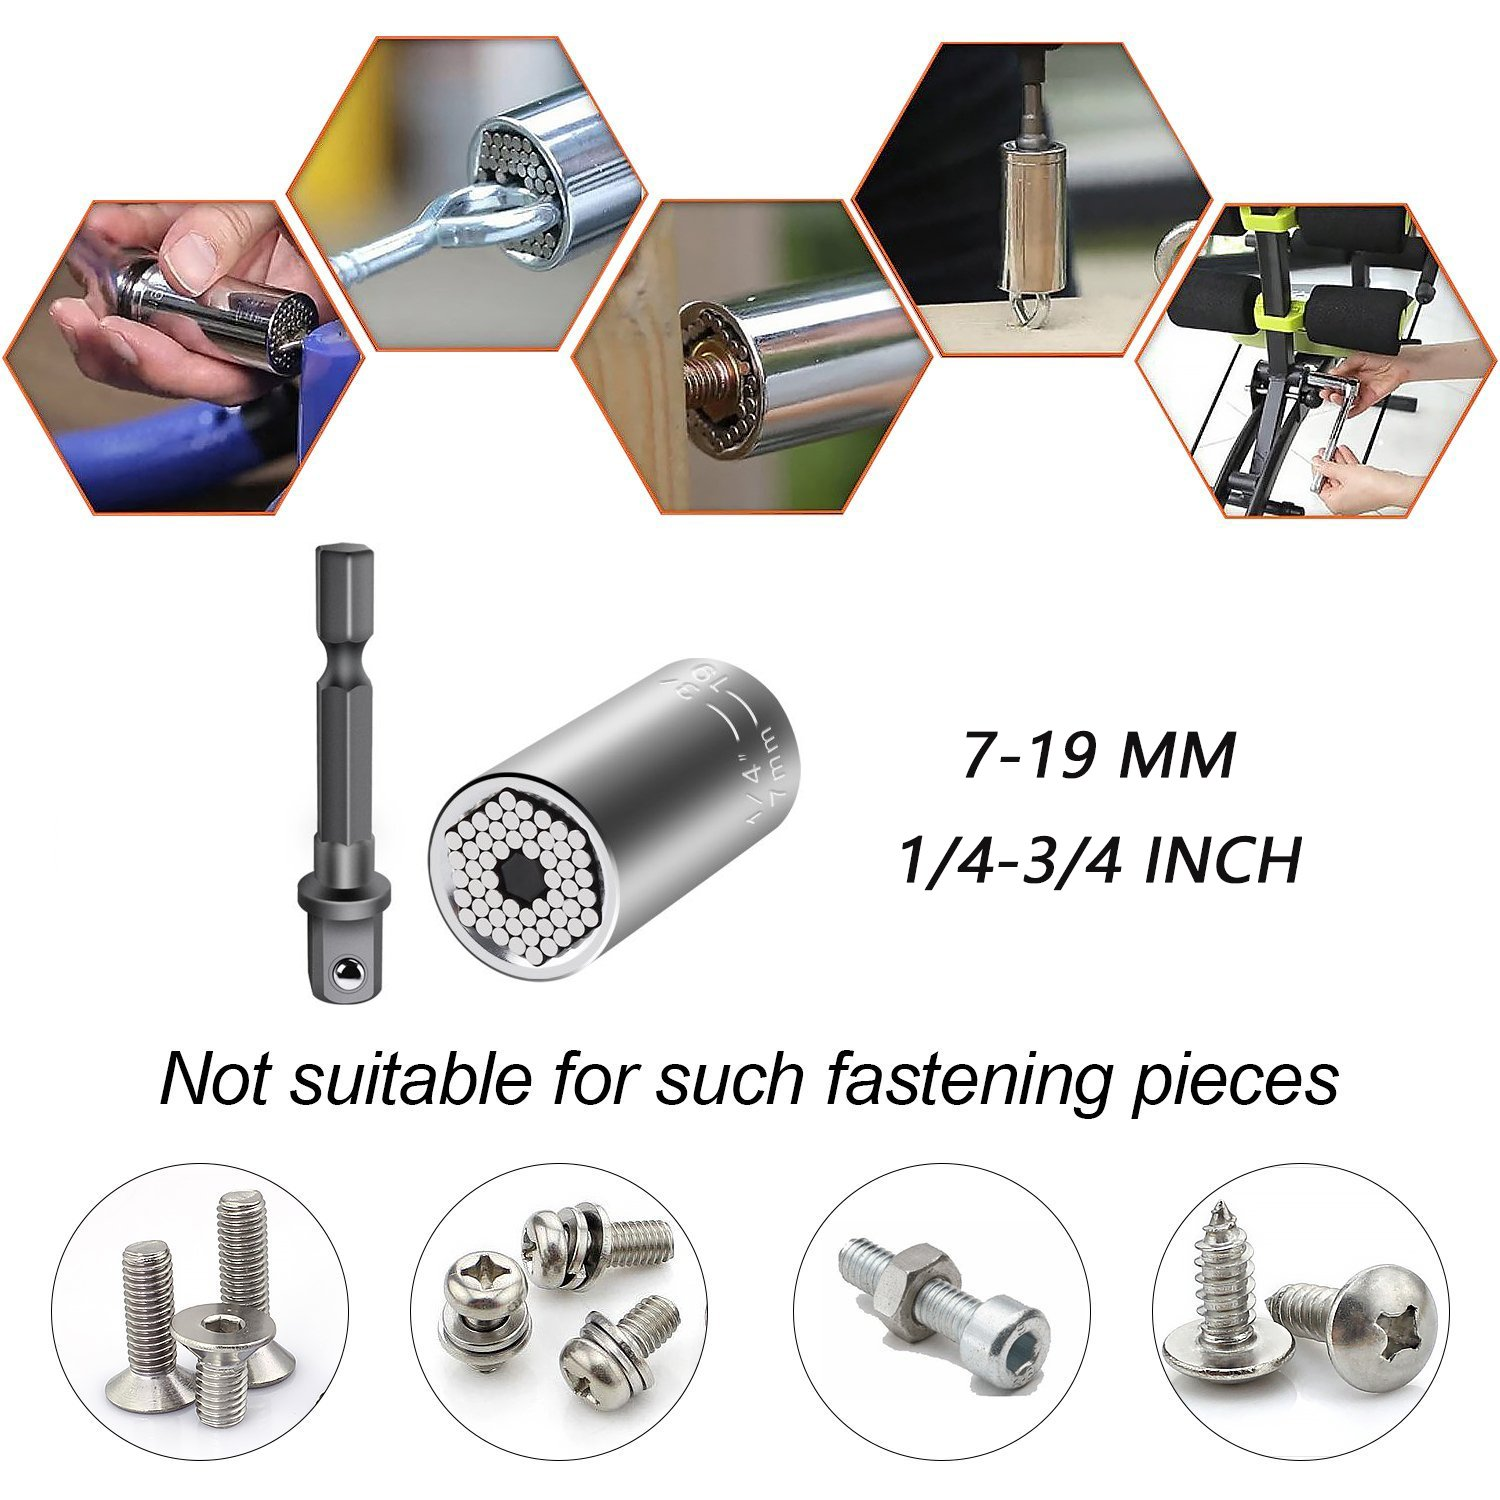 Elivern Universal Socket Set 7-19mm(1/4-3/4 inch),Universal Socket Wrench Adapter Fool Sleeve Piece,Professional Repair Tools(Silver)